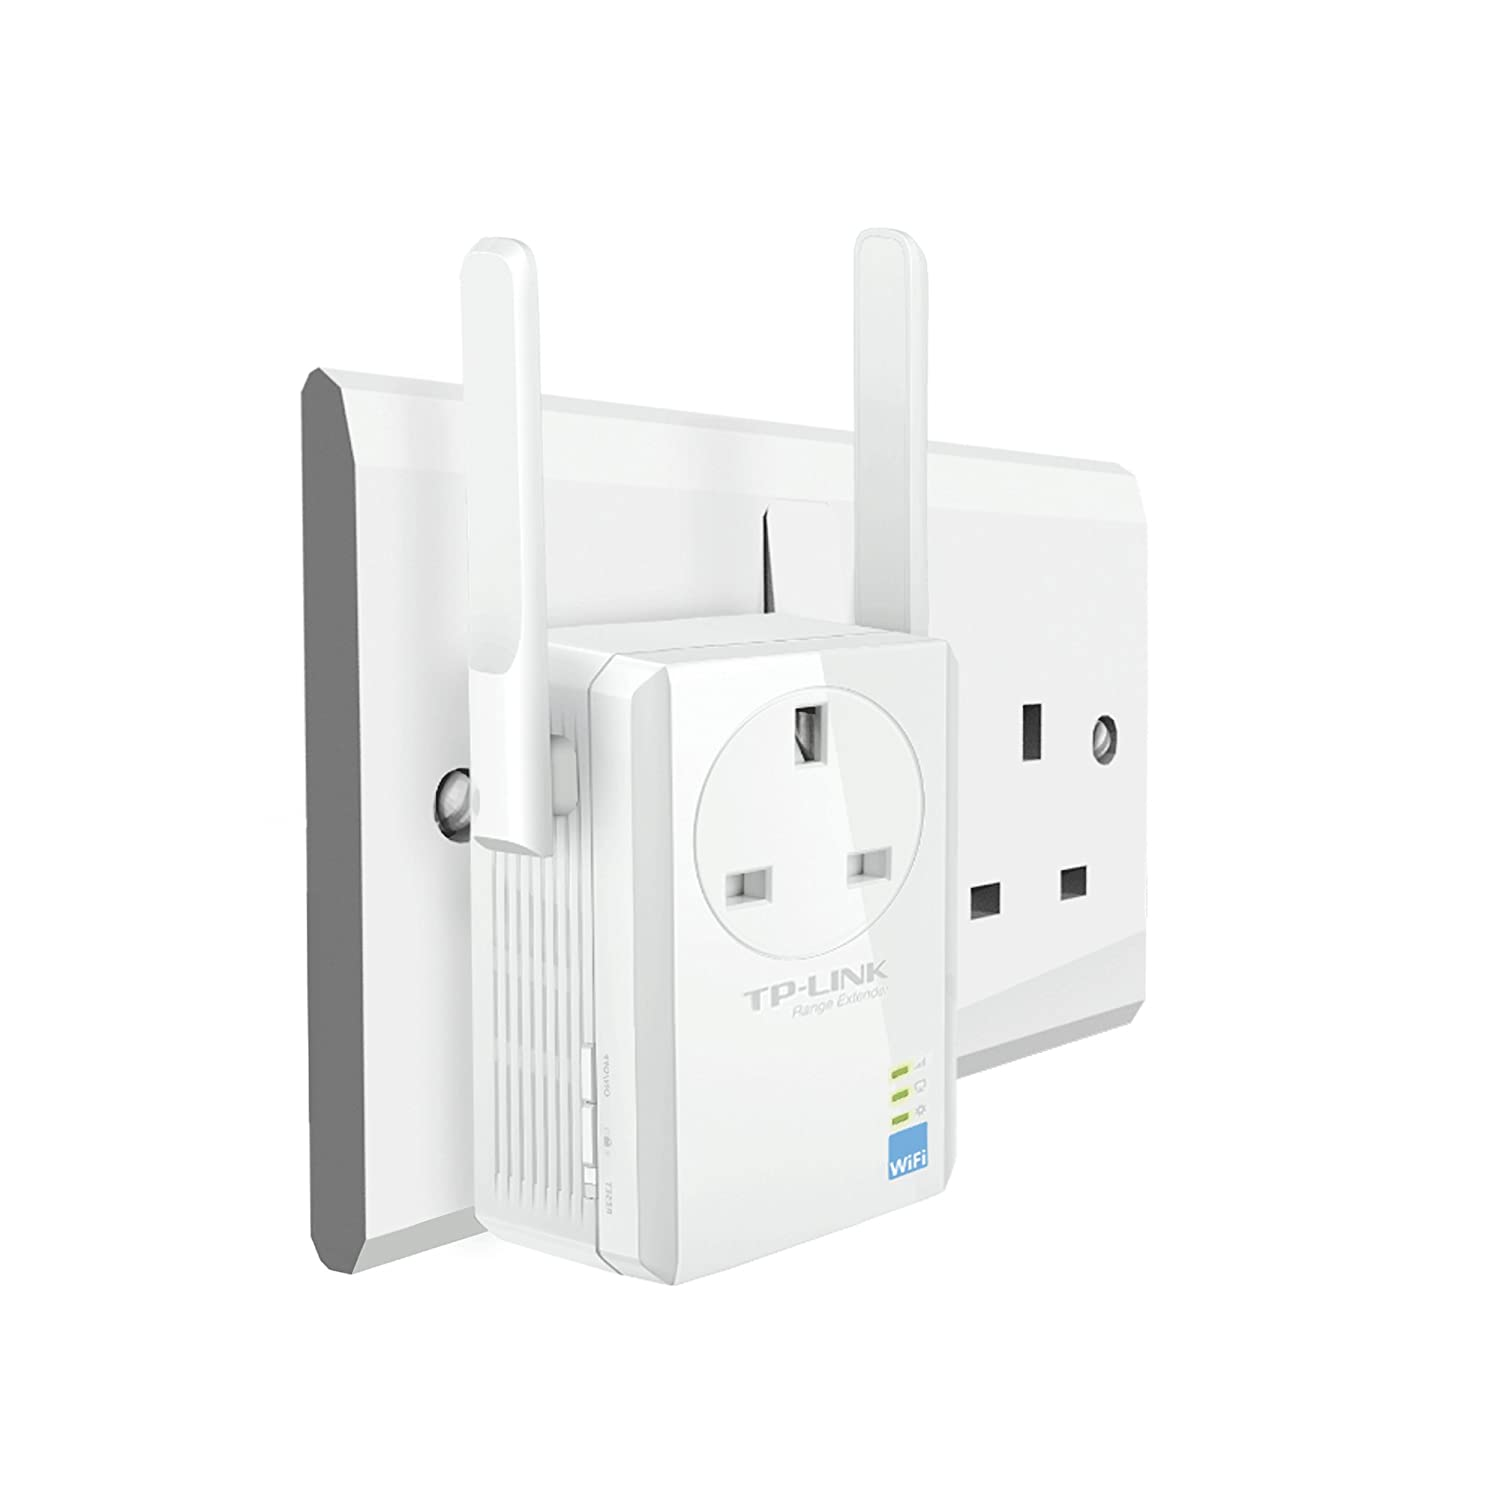 Tp Link Tl Wa860re N300 Universal Range Extender With Extra Power Powerline Adapters An Alternative To Ethernet Cable Wireless Outlet Broadband Wi Fi Booster Hotspot 1 Port And 2